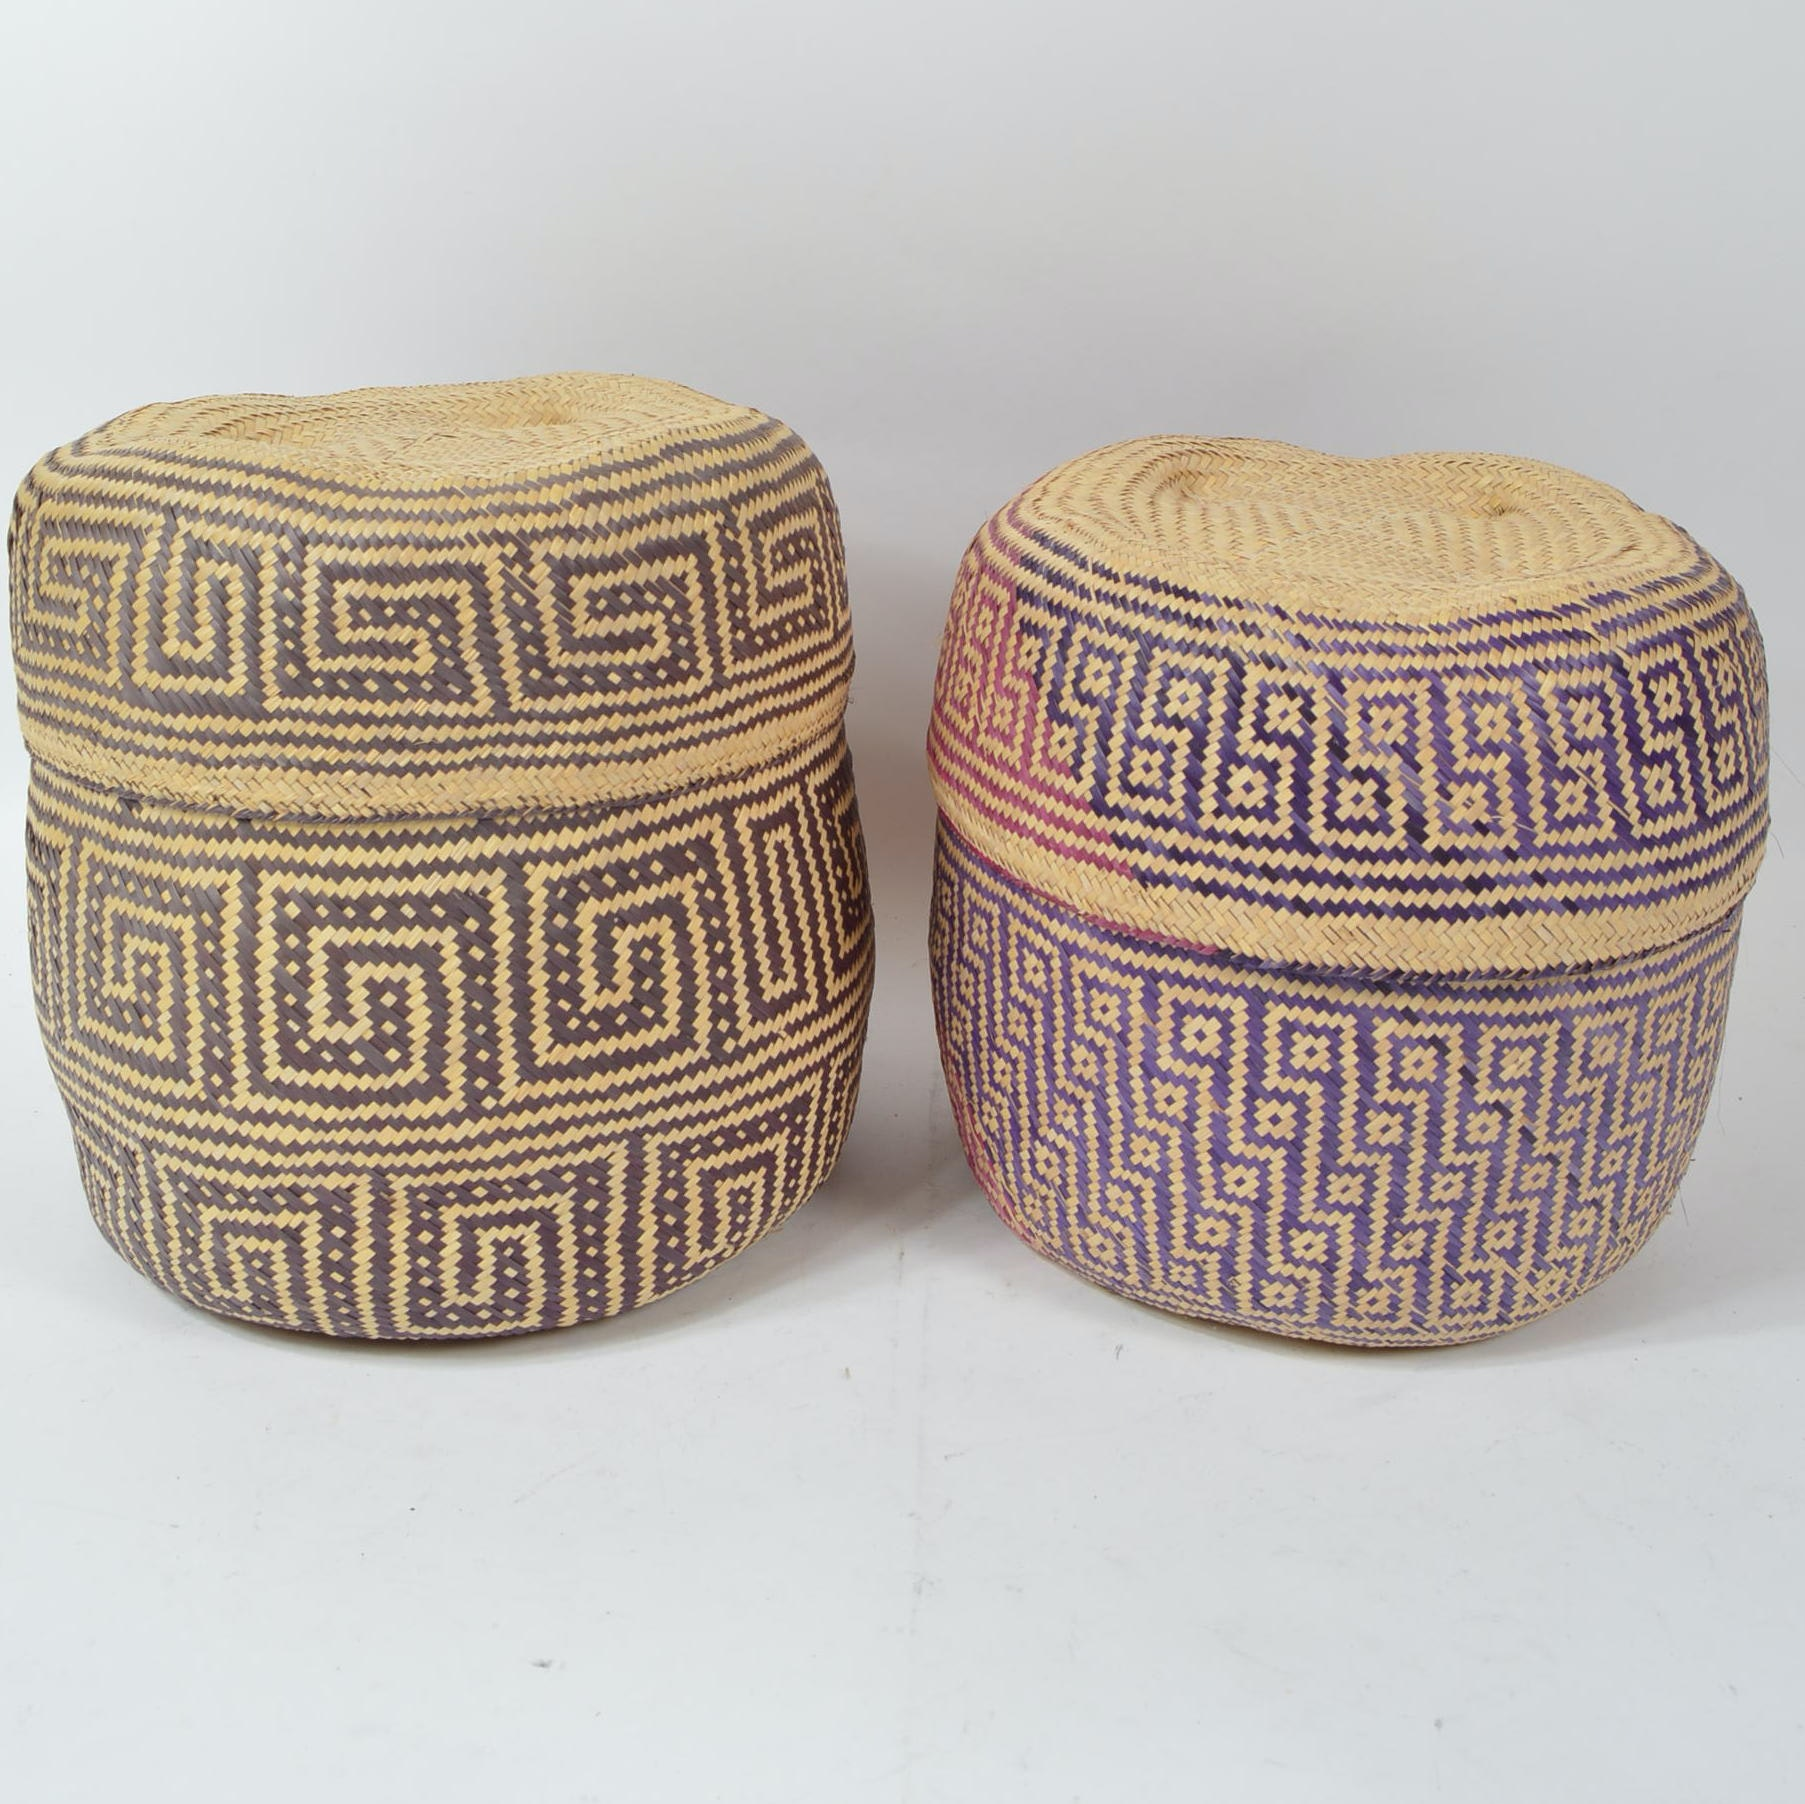 Woven Baskets from Oaxaca